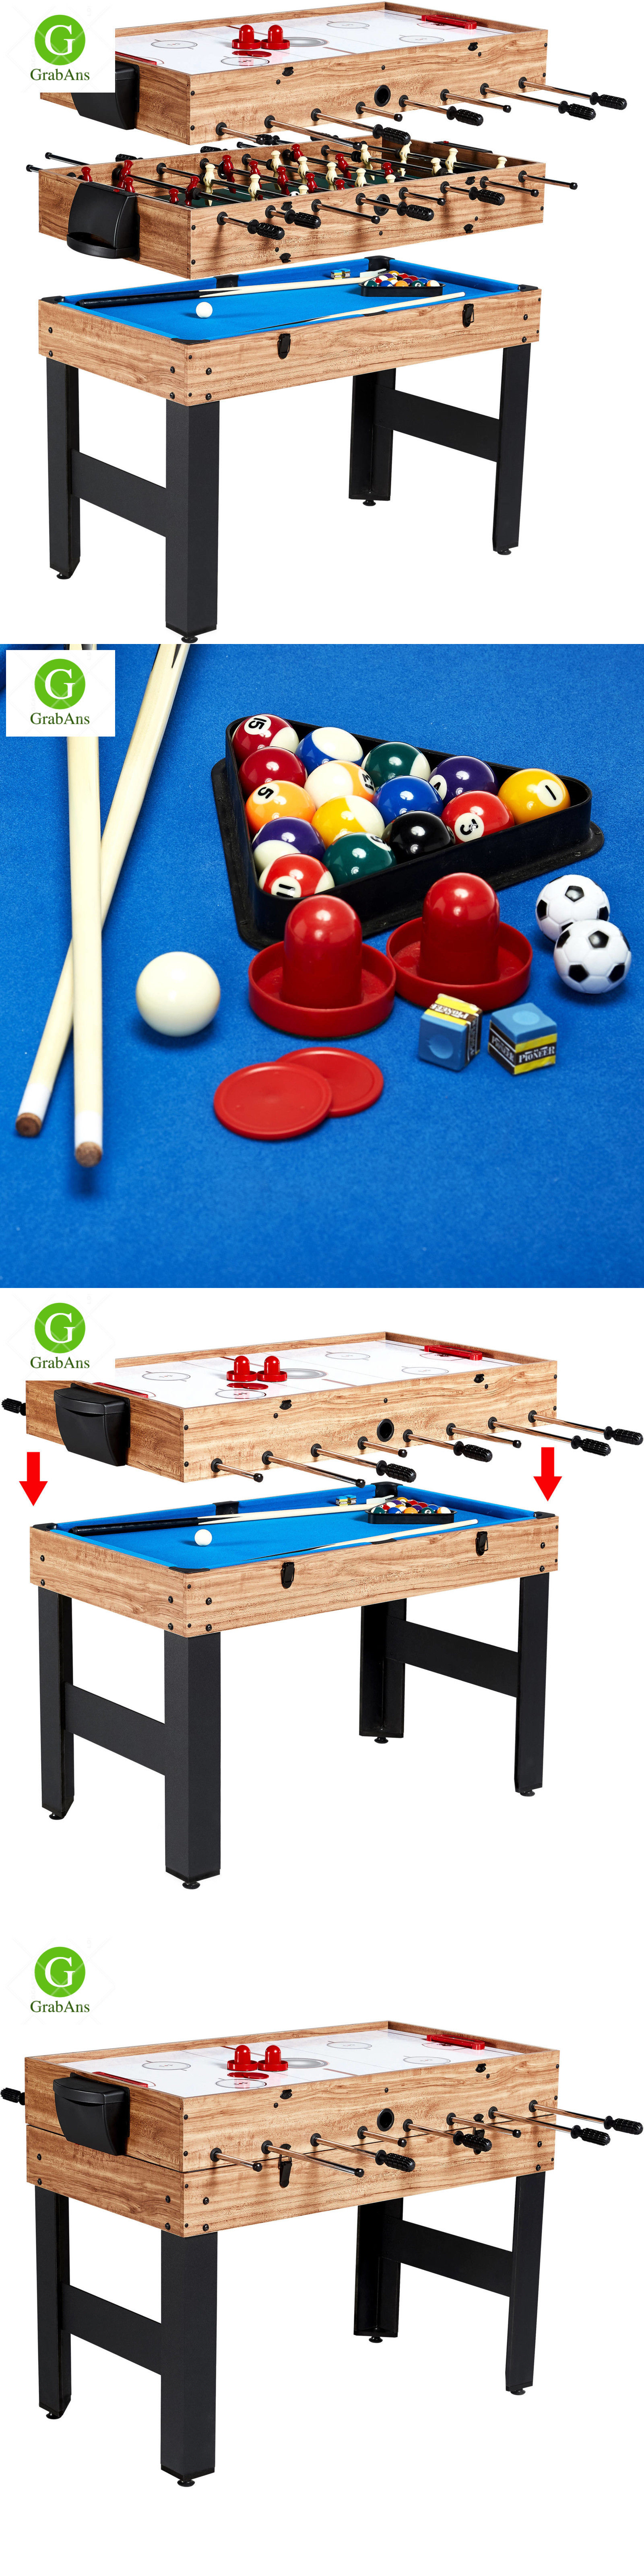 Tables Tabletop Multi Games Sports In Pool Table - Pool table top only